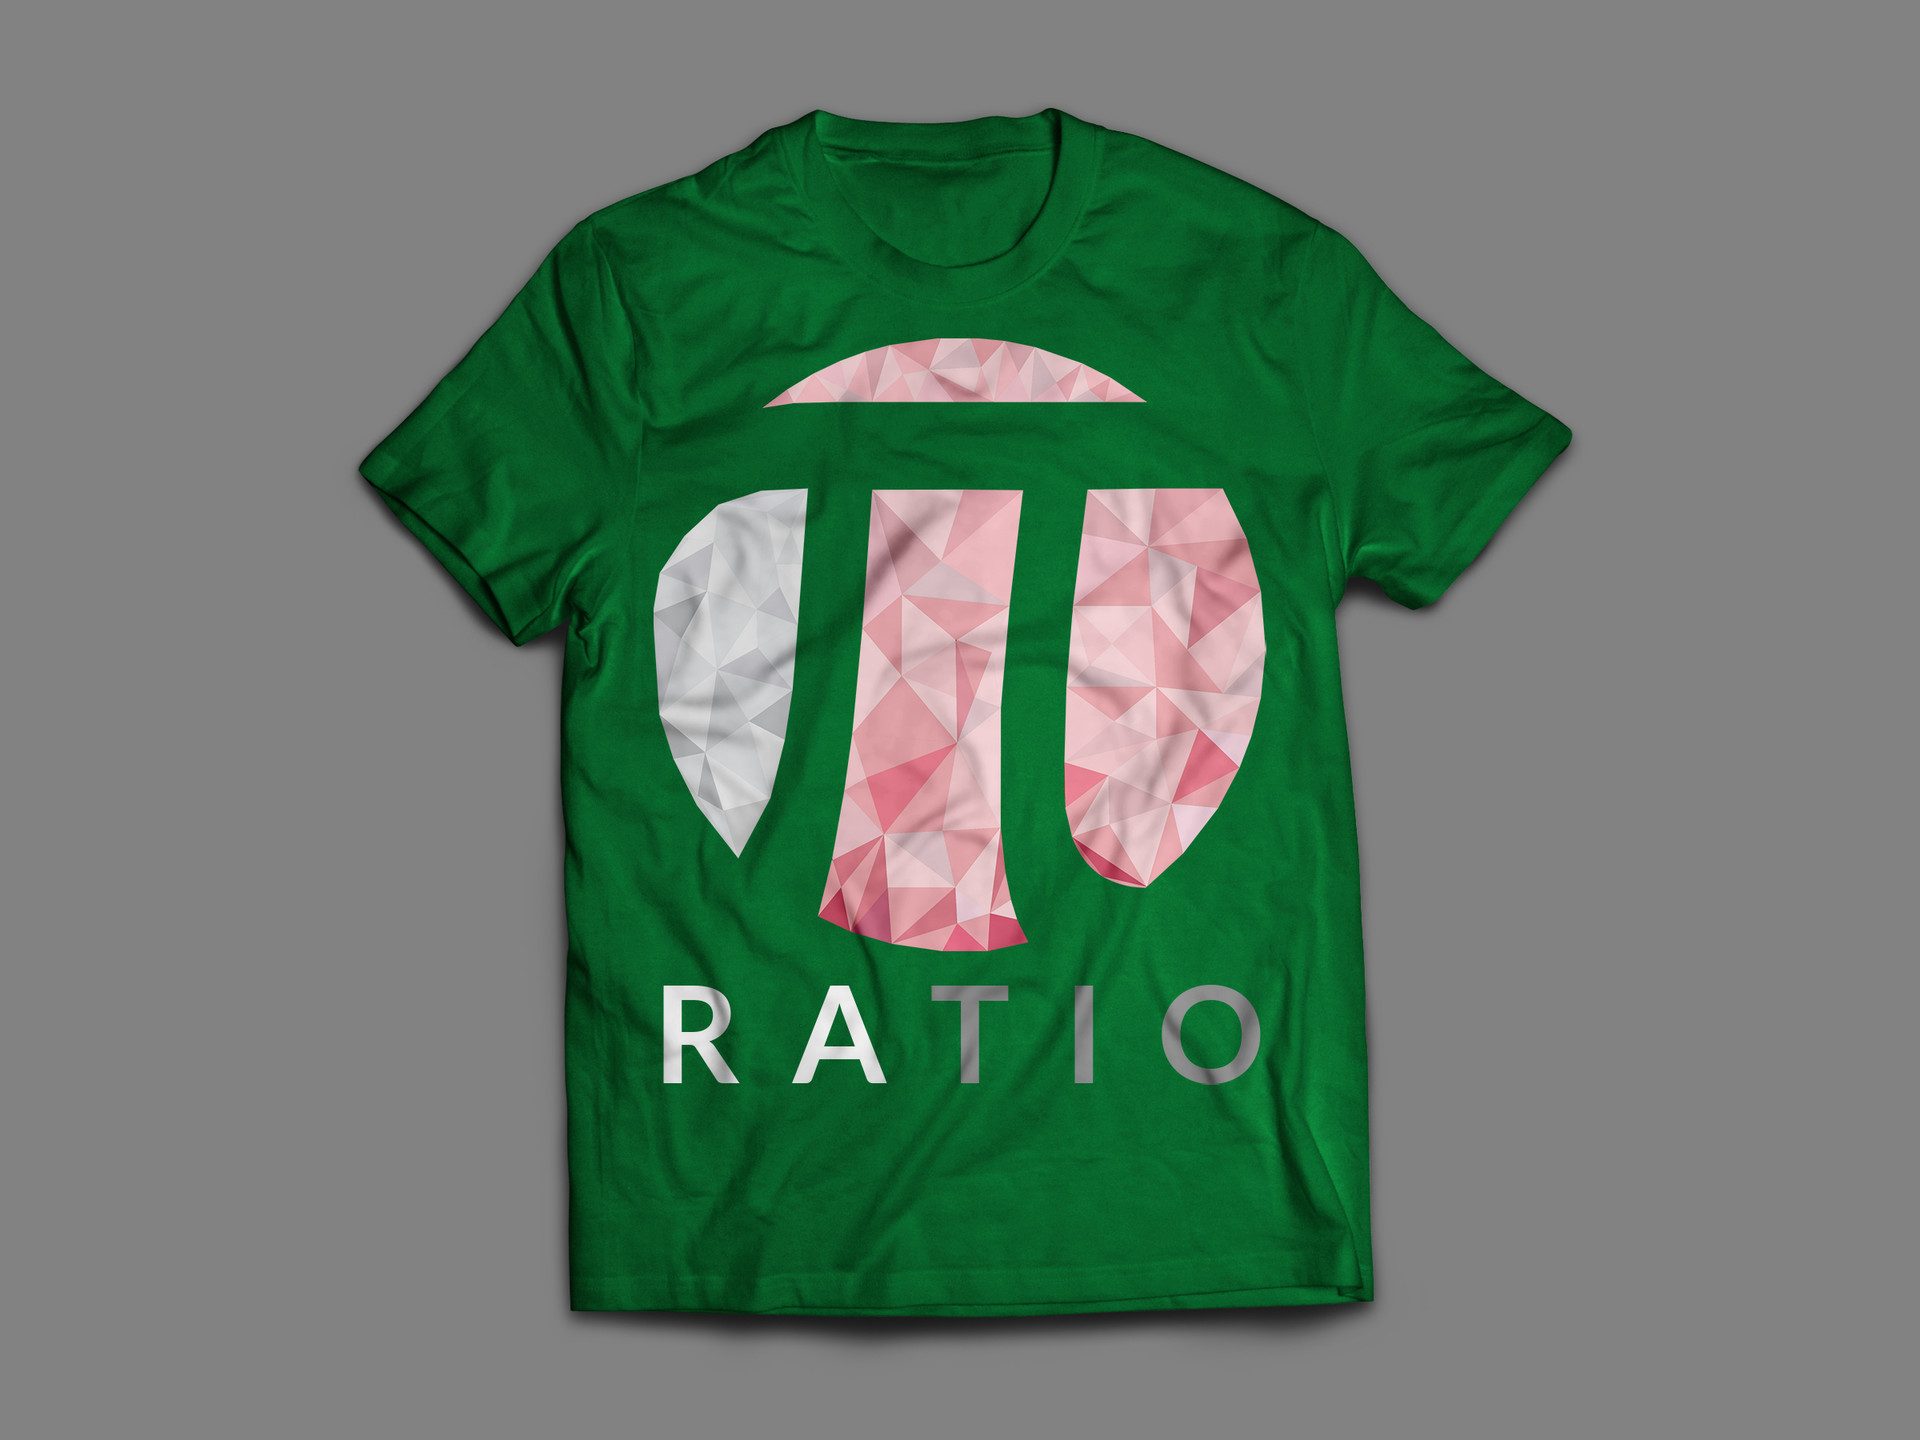 Jerry ubah ratio tshirt front 4